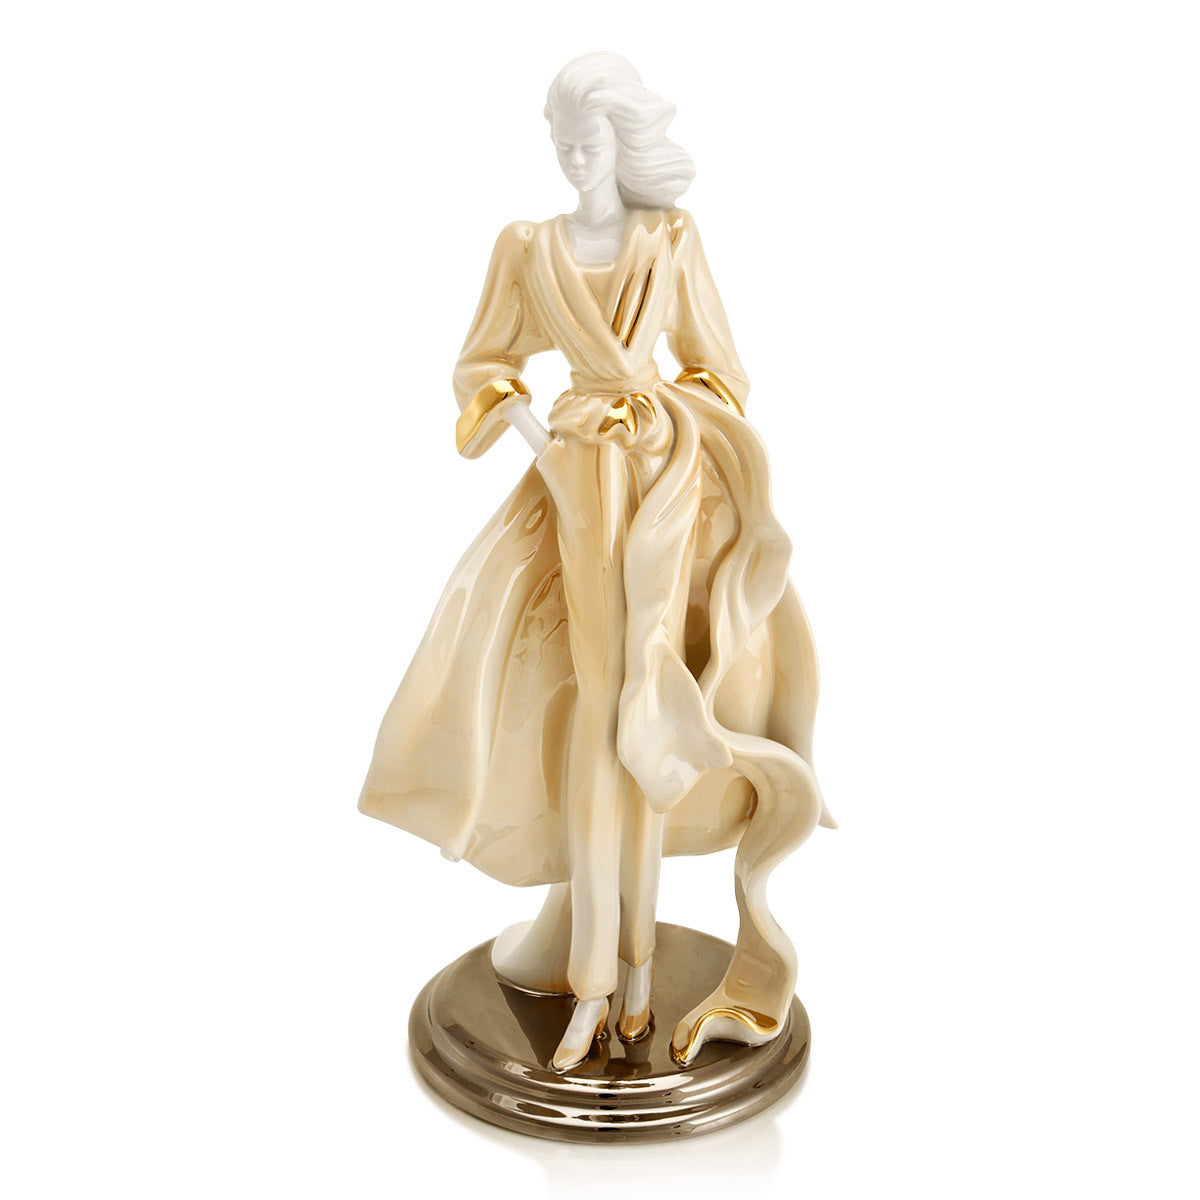 Porcelain Figurines-ceramic lady figurines- collectible ceramic home decor home accessories